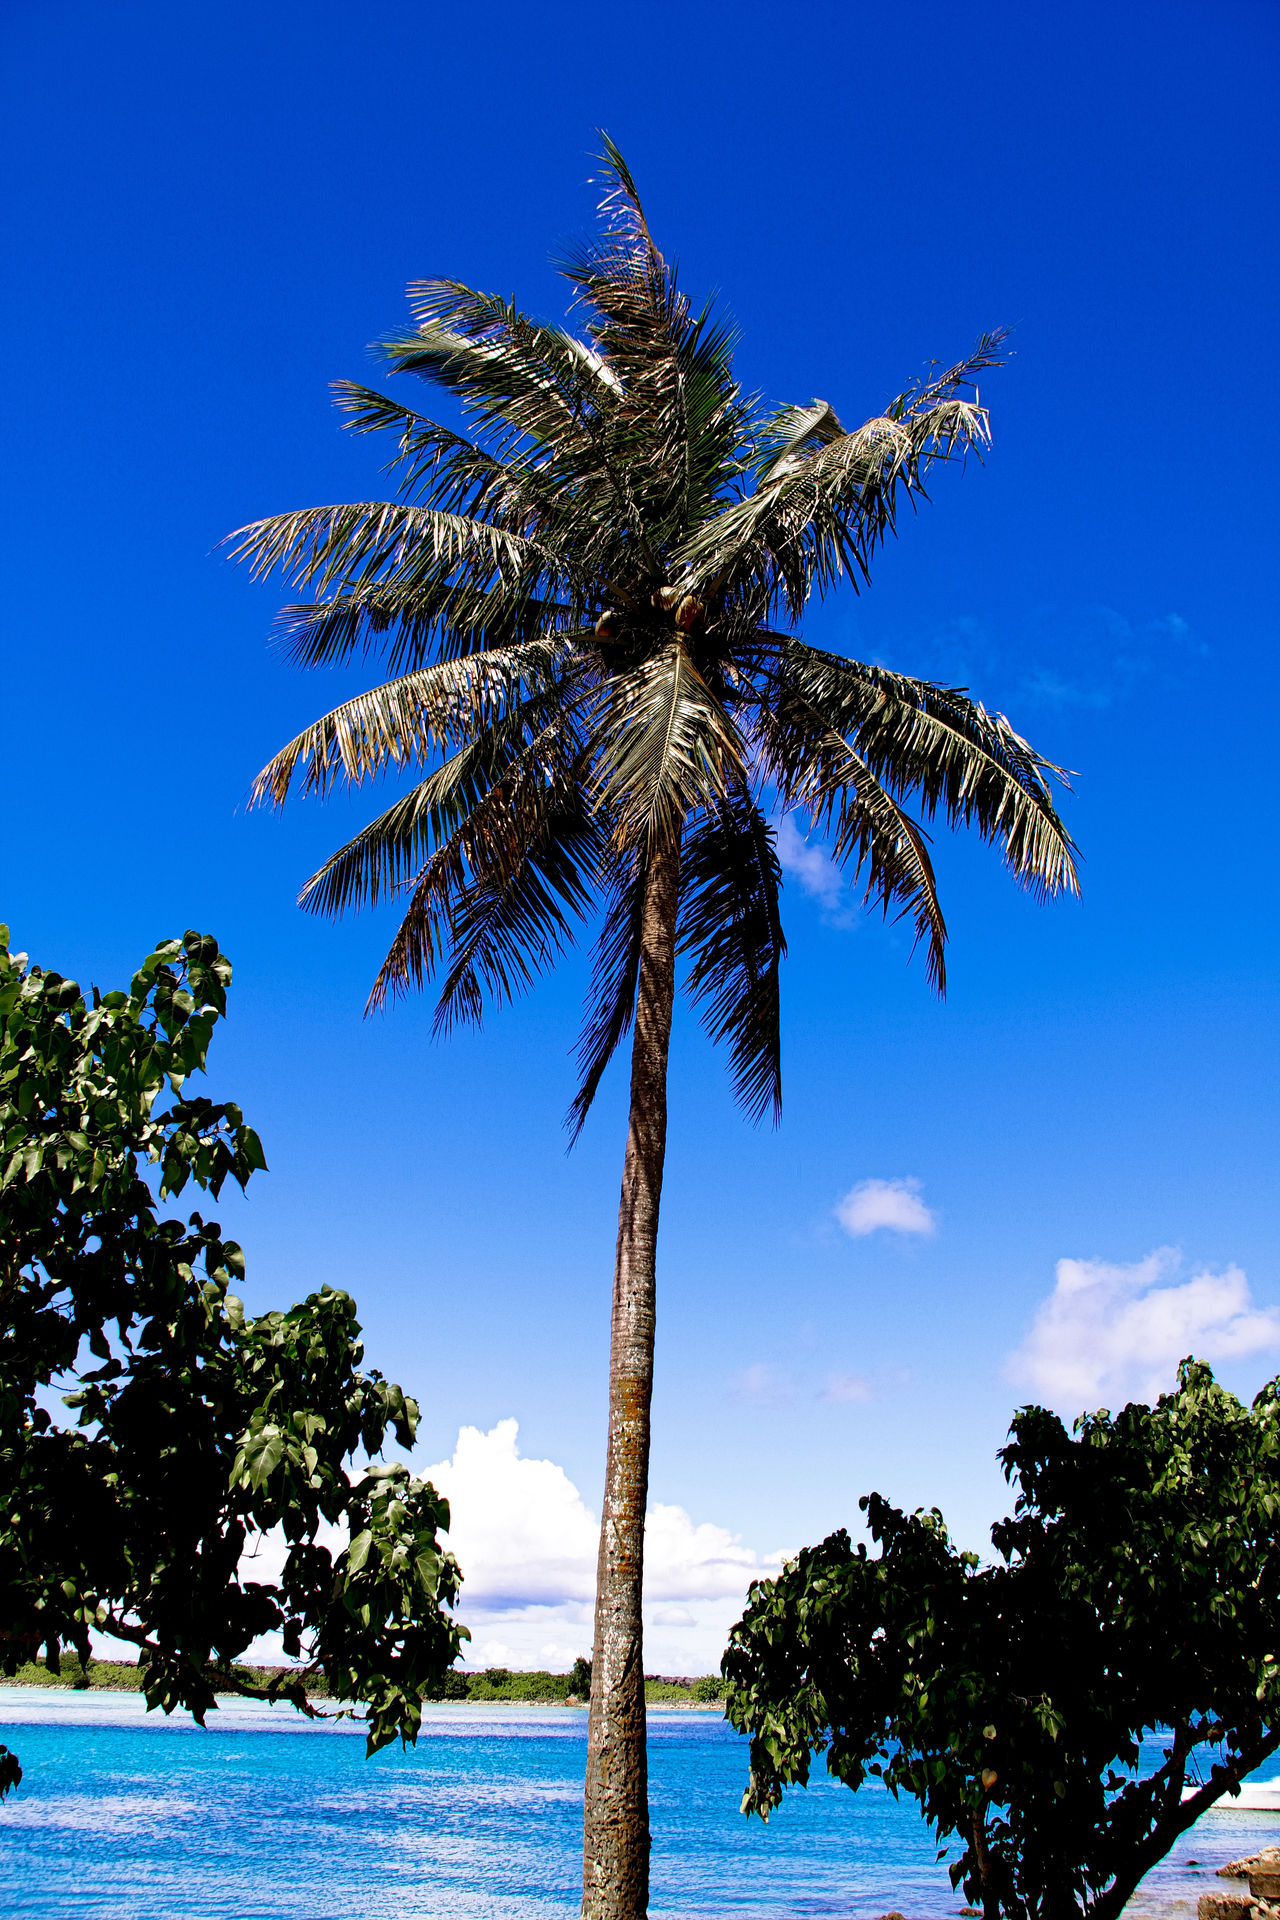 An image of nice palm trees in the blue sunny sky 43 Golden Moments America American Flag Beauty In Nature Blue Blue Sky Getty Getty Images Getty X EyeEm Growth Guam Nature Nature Nature_collection Outdoors Pacific Palm Tree Sky Stockphoto Stockphotography The OO Mission Tree Vacation